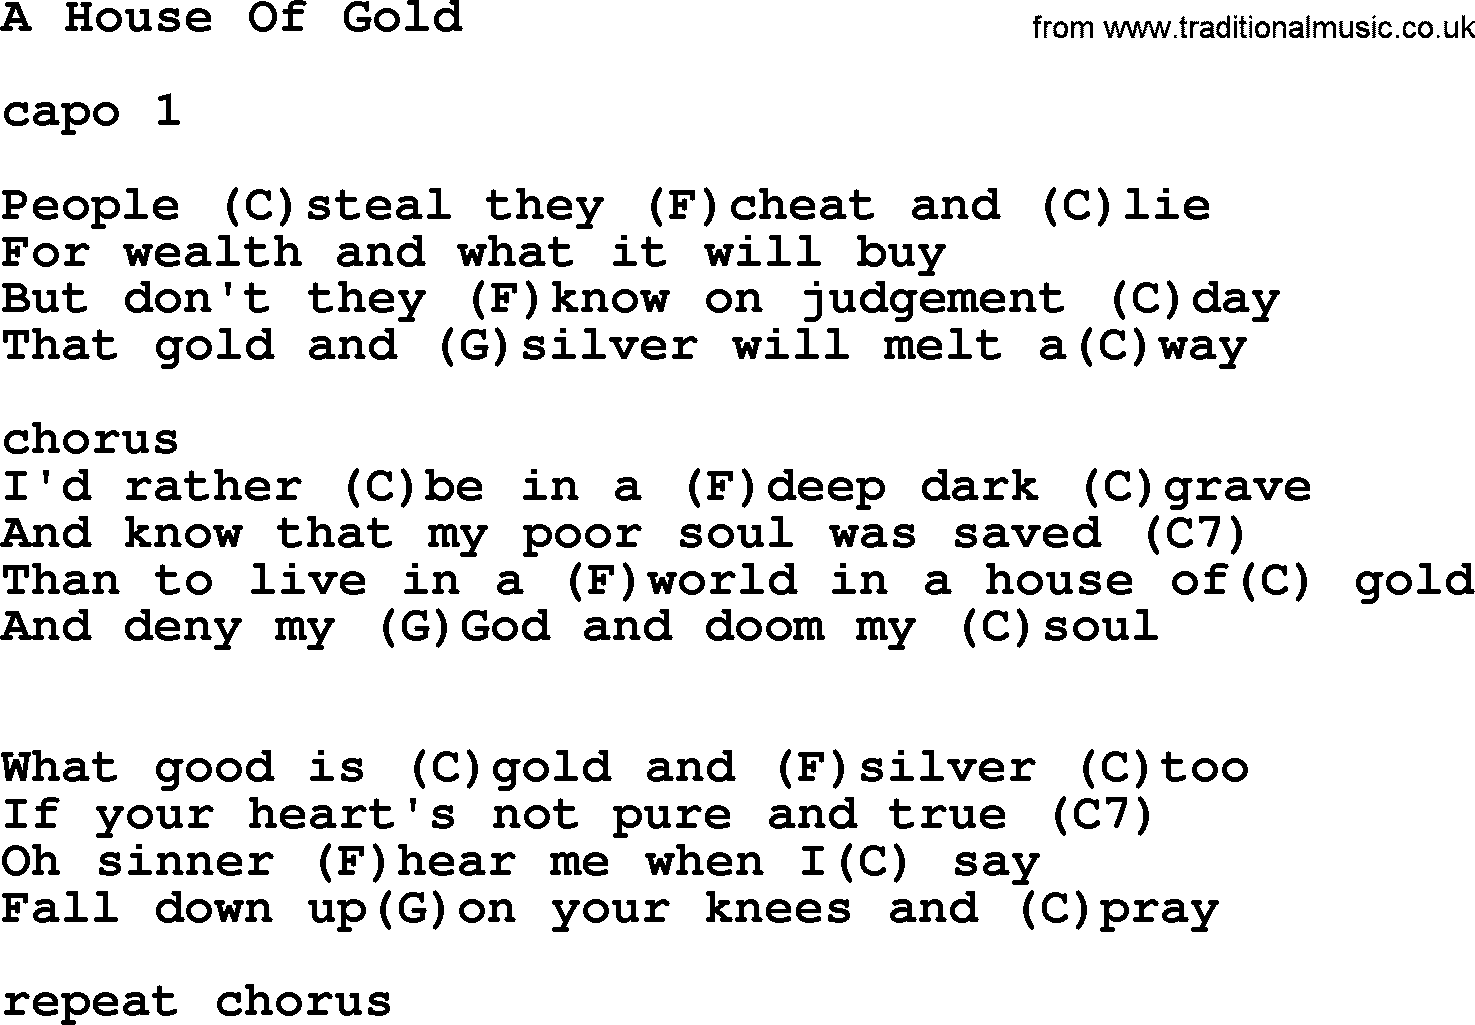 hank williams song a house of gold lyrics and chords. Black Bedroom Furniture Sets. Home Design Ideas